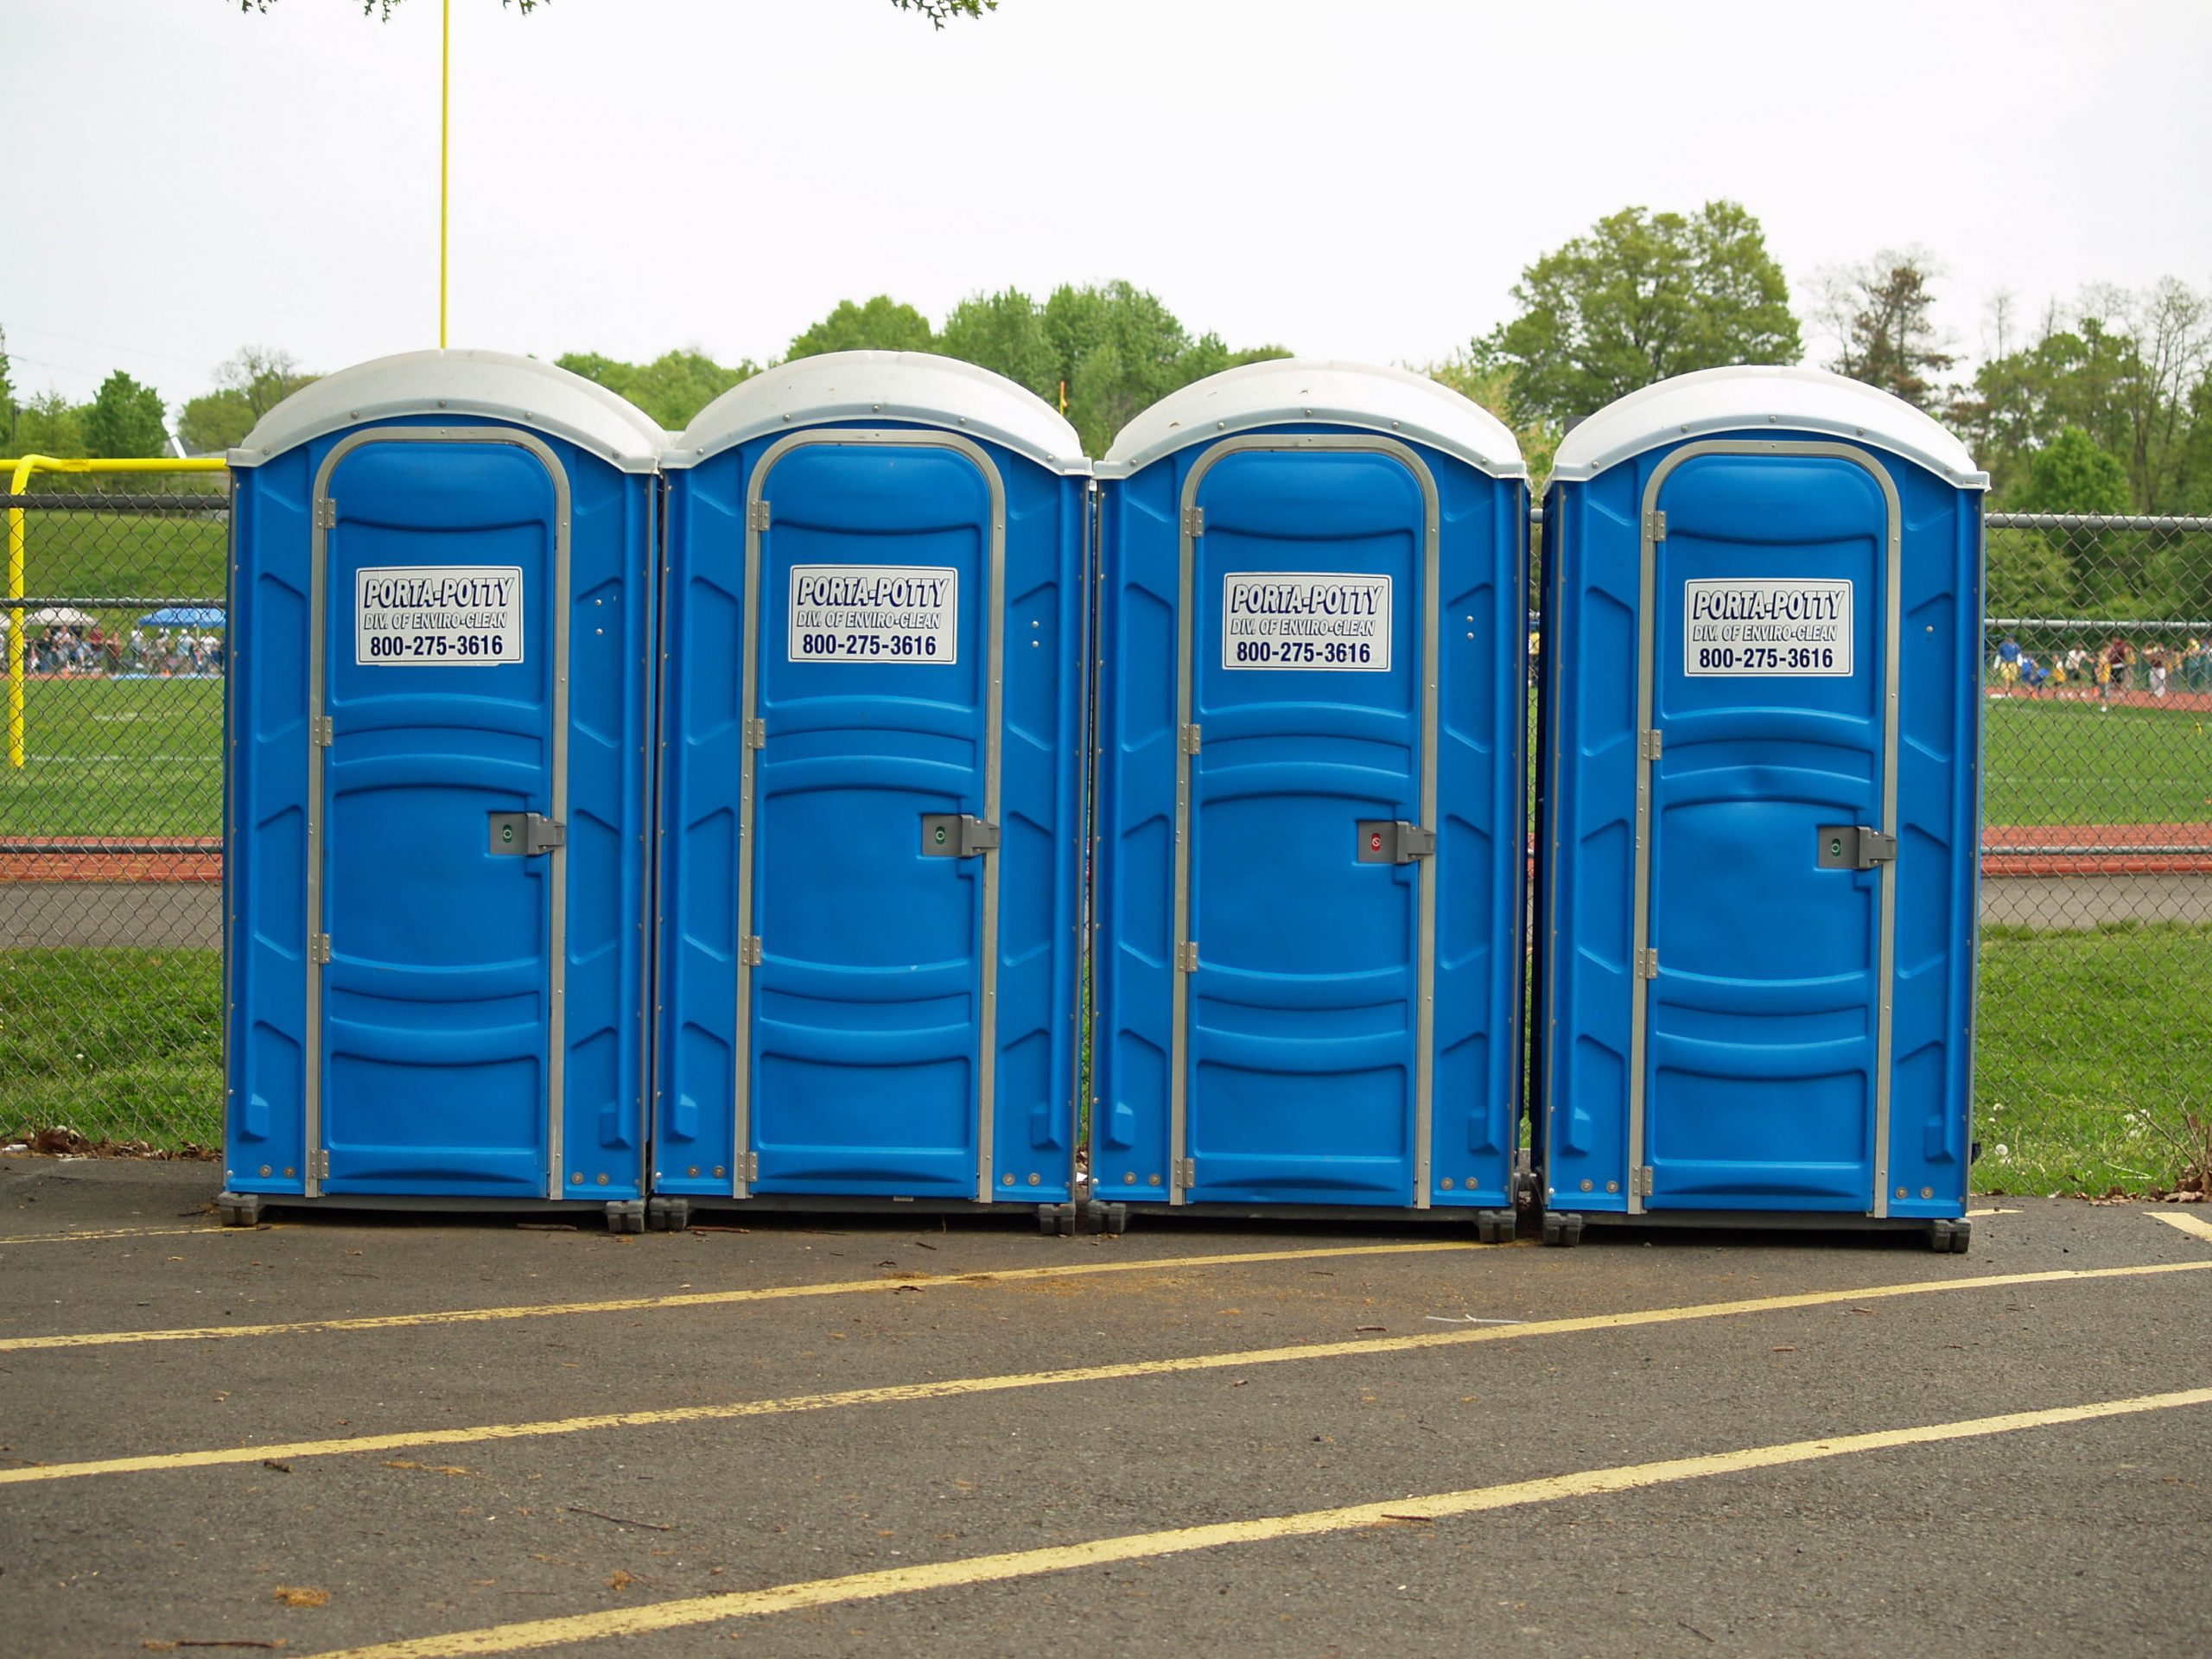 What are the different models of portable toilets?